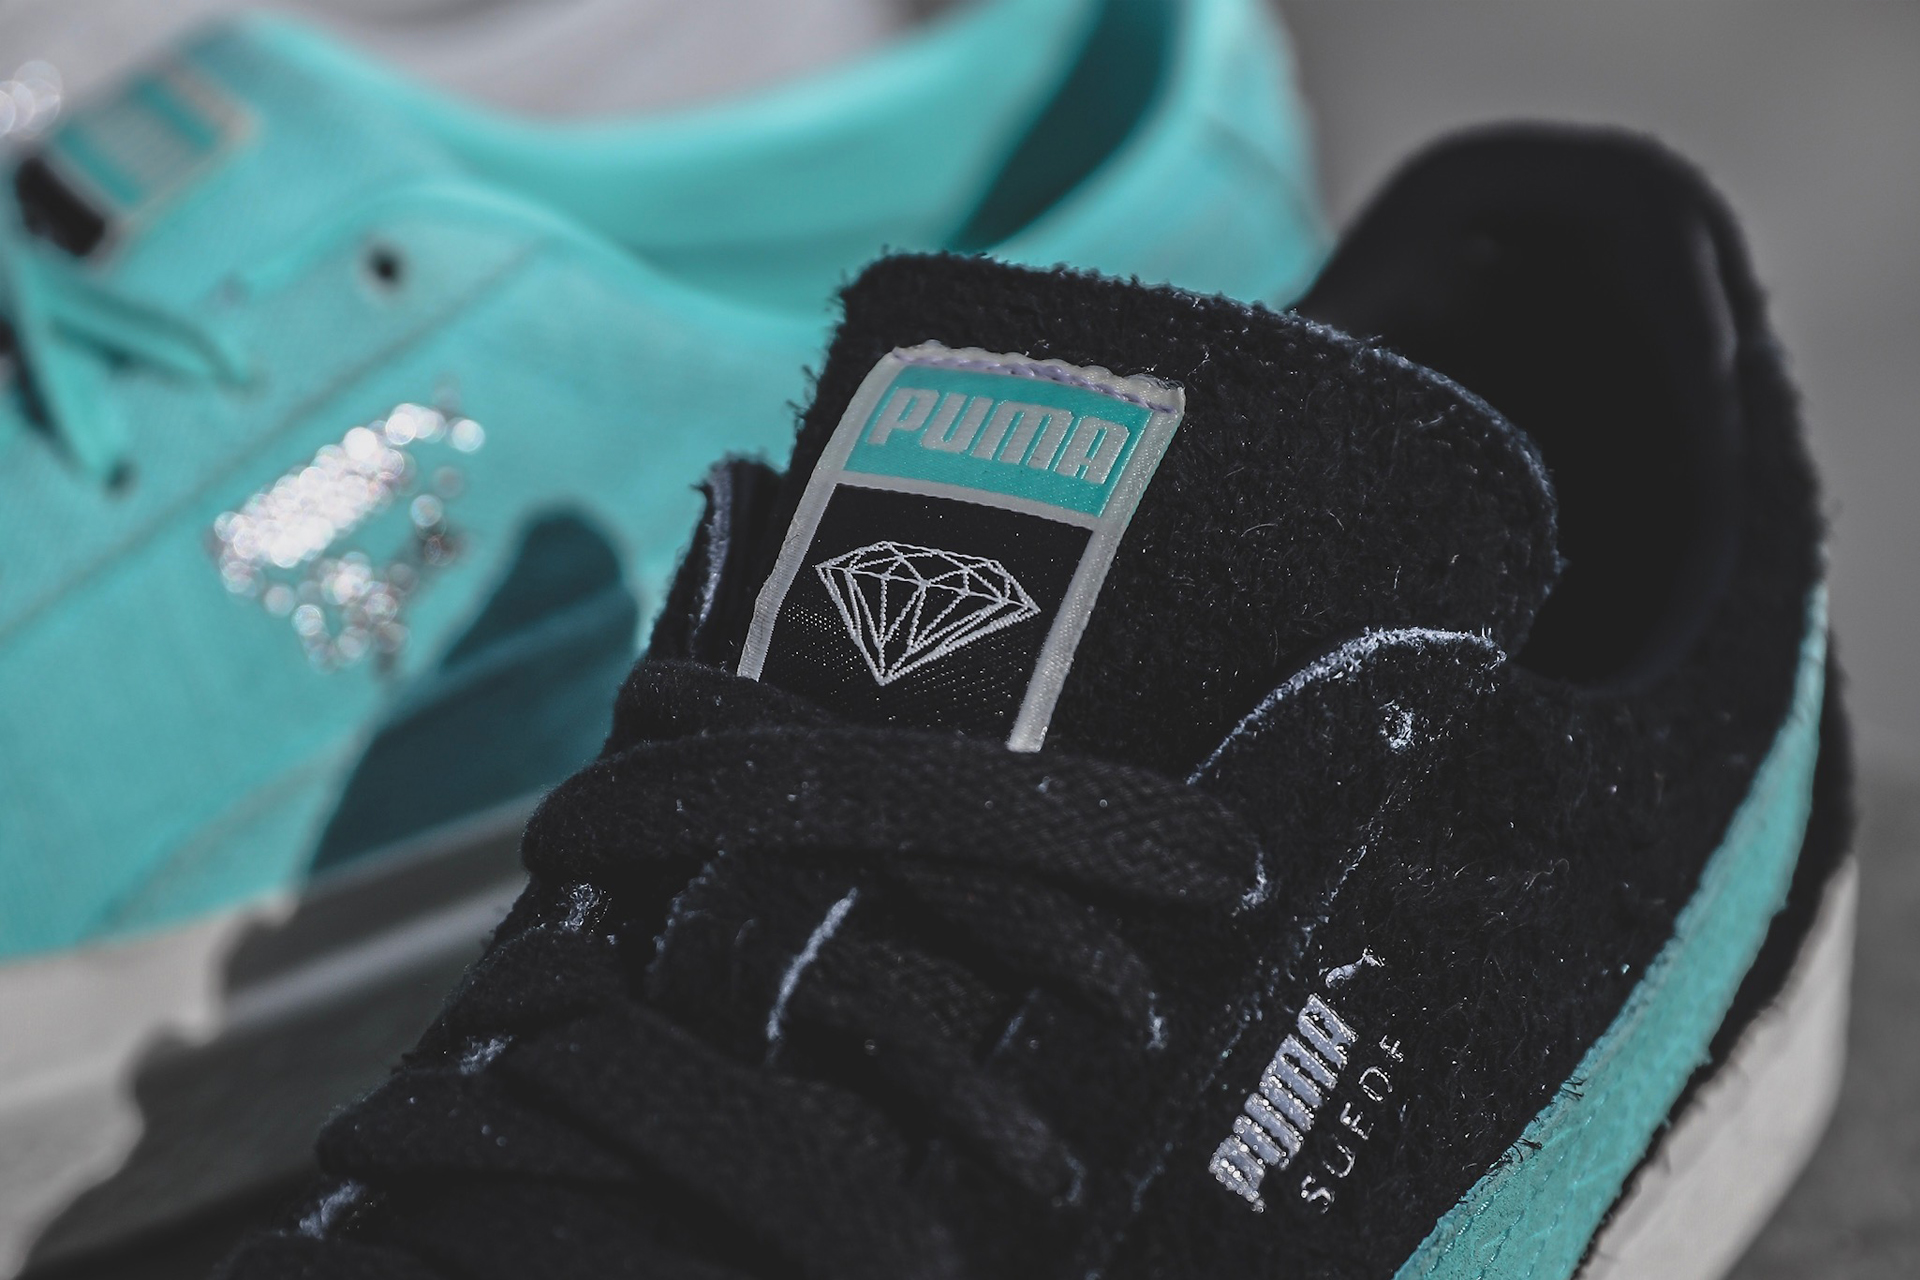 buy online 1aaa2 a3698 Diamond Supply Co. x Puma Collection. - Visionarism